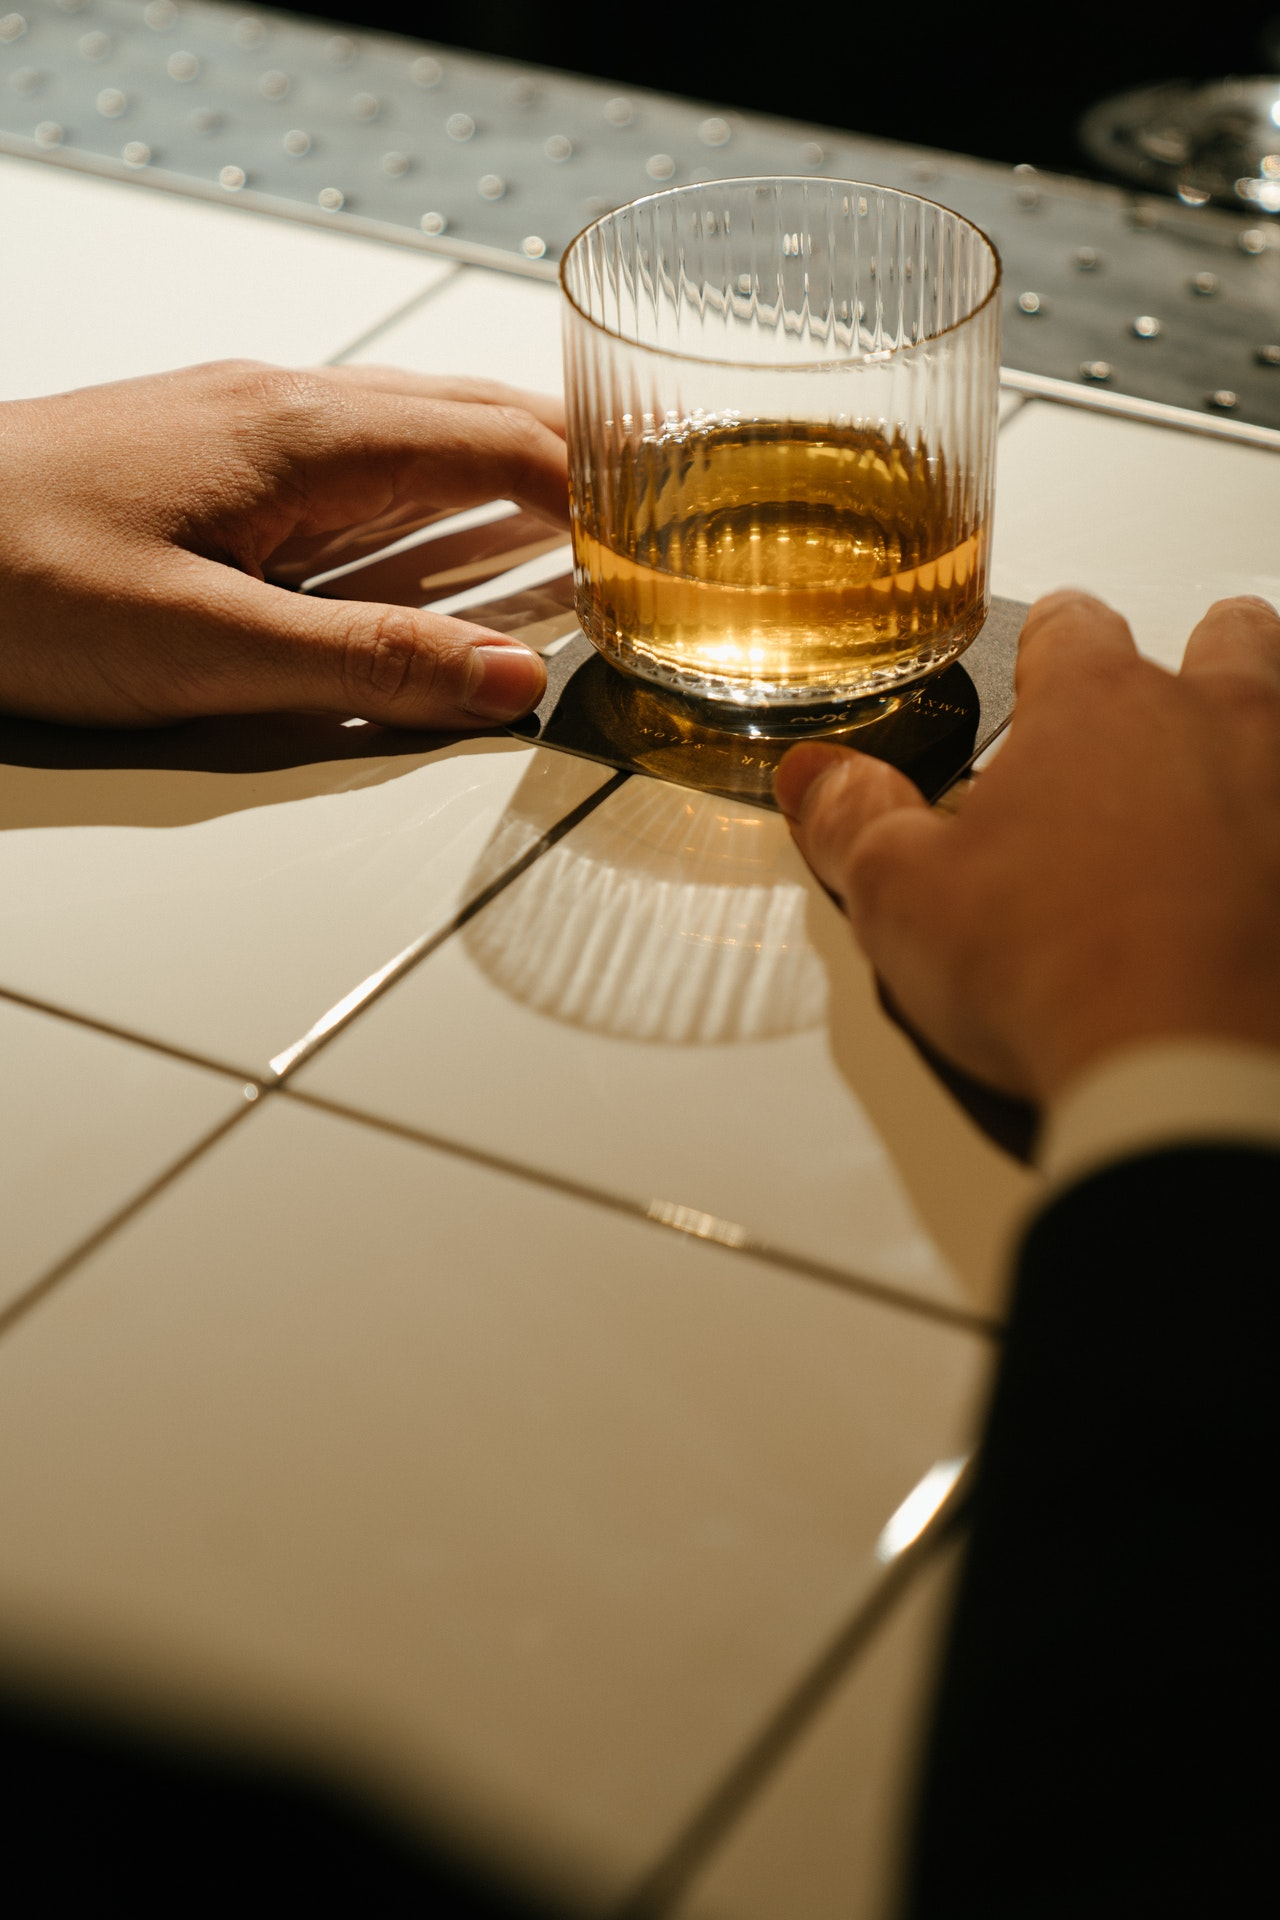 Oil, Water, & Alcohol: Thoughts On The Marketing Industry